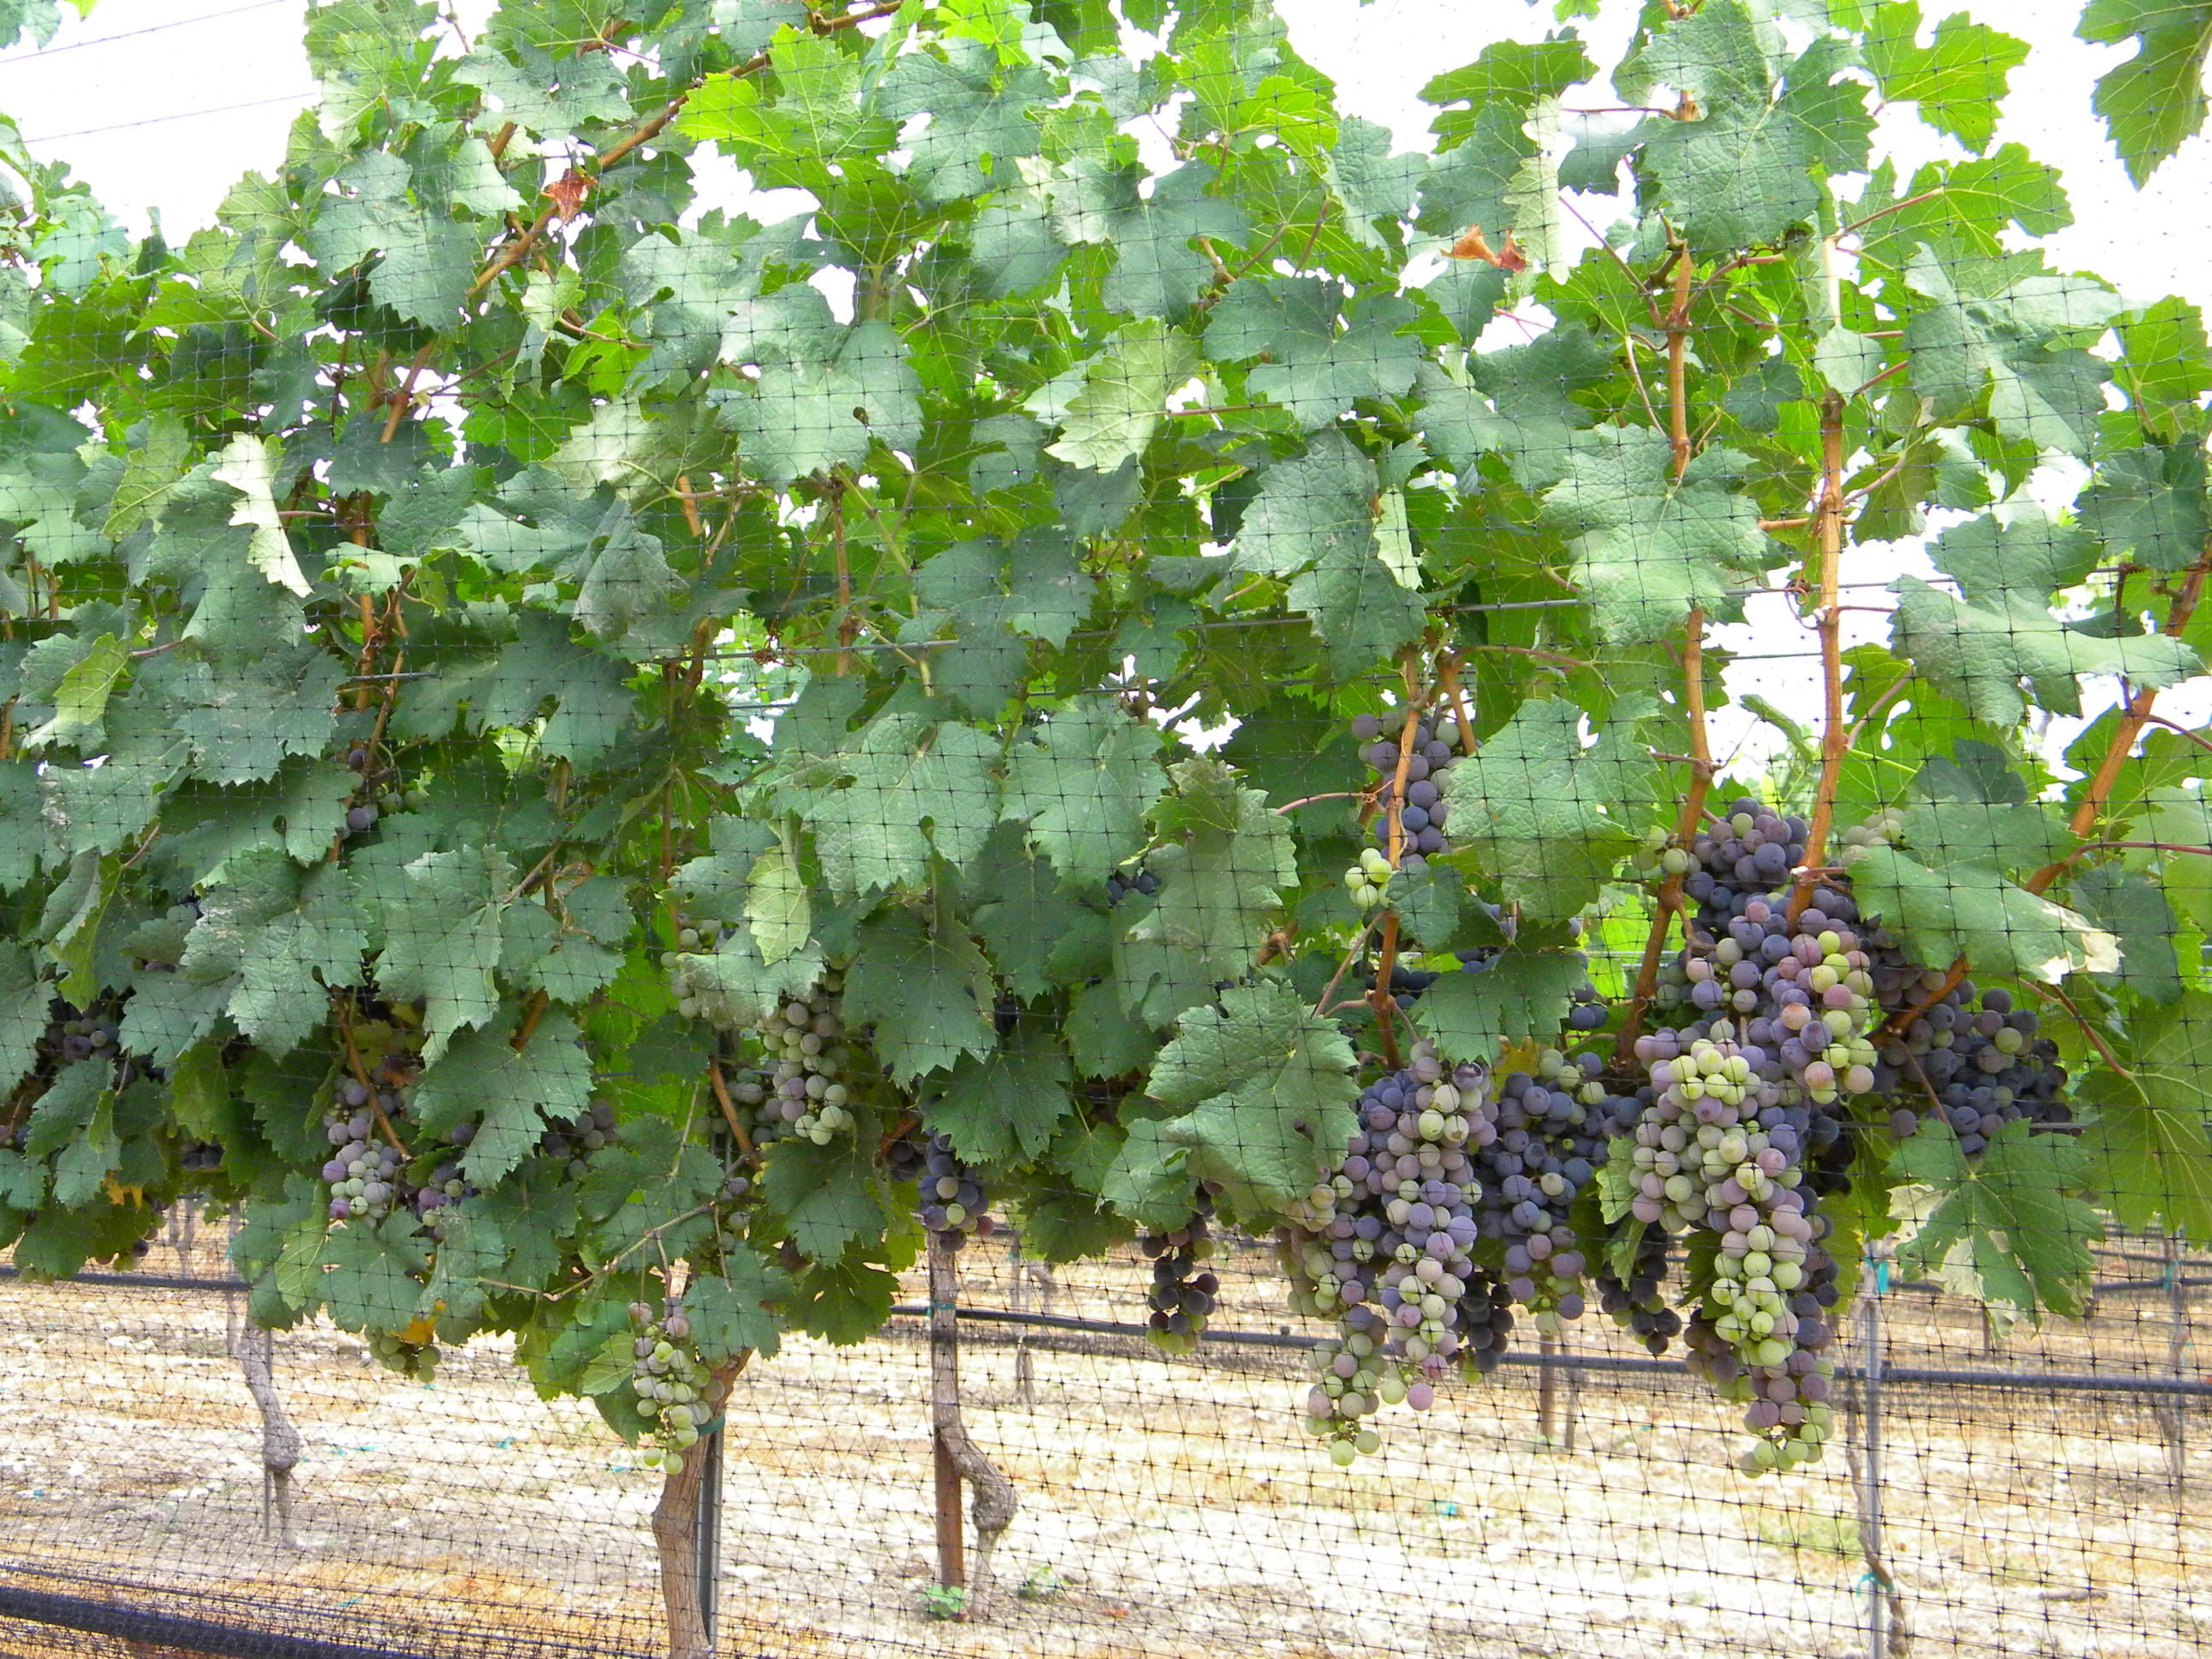 Vineyard supplies and equipment